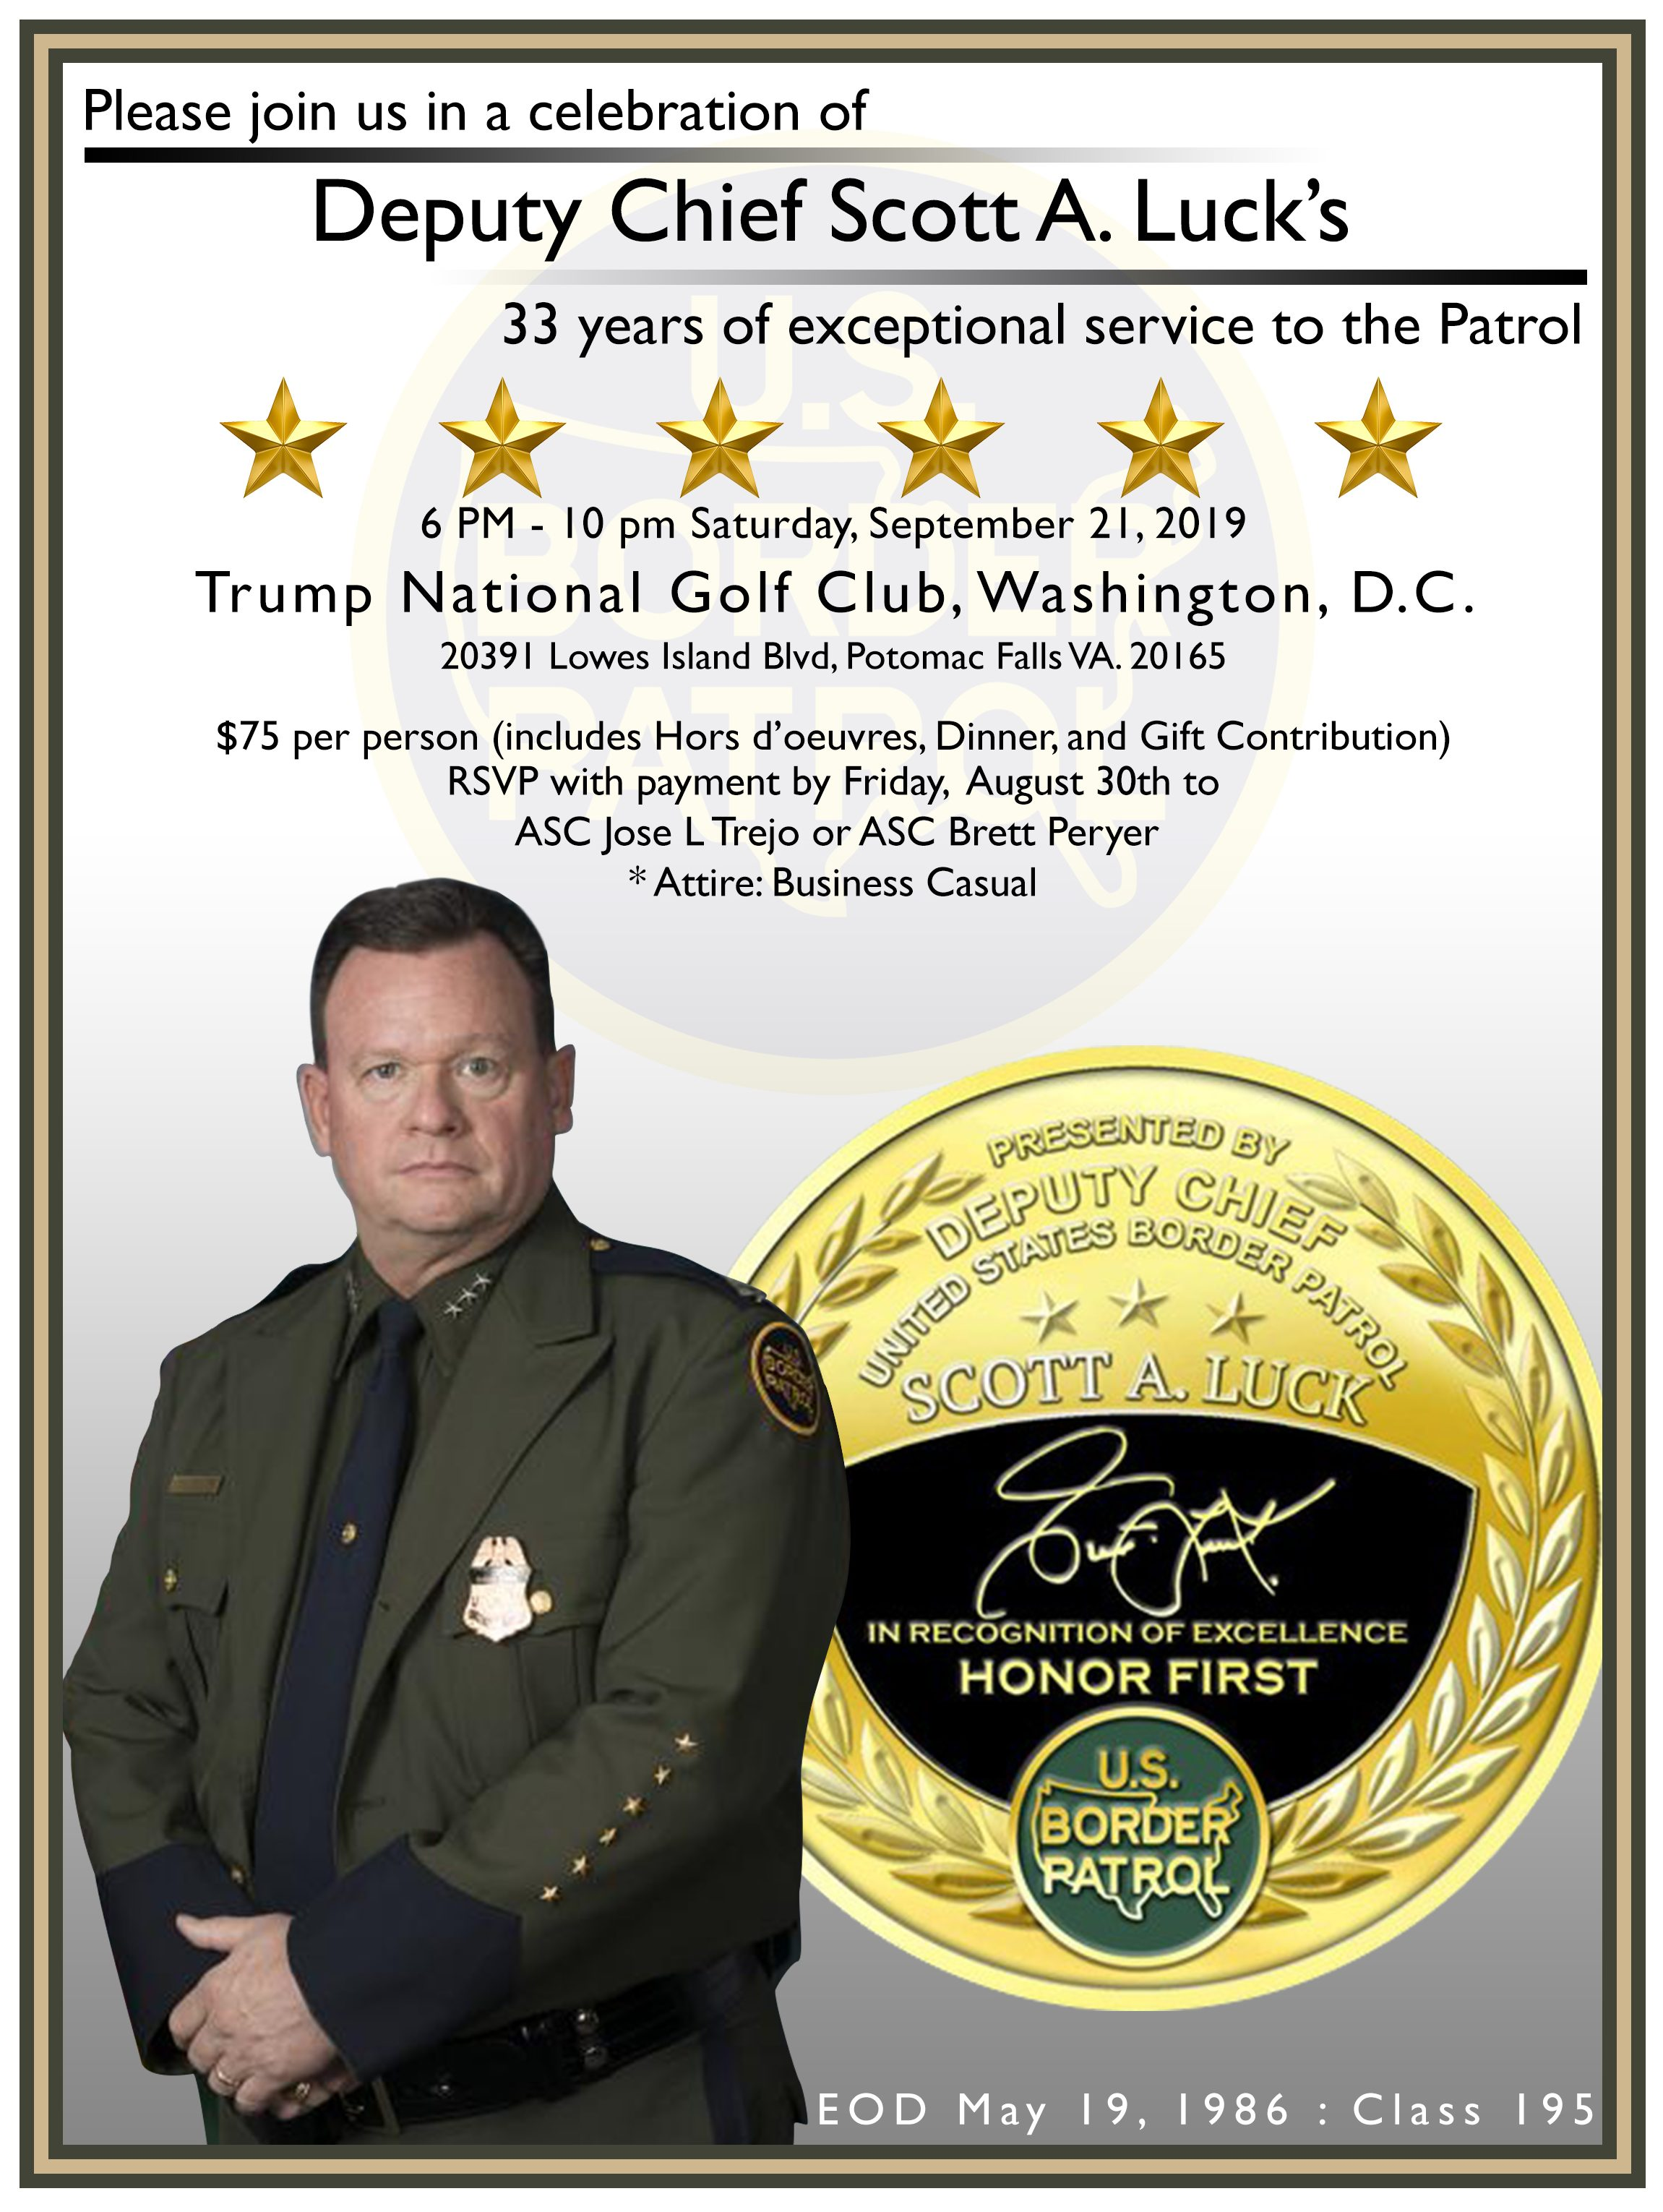 The flyer sent out to Border Patrol employees for deputy chief Scott Luck's retirement dinner